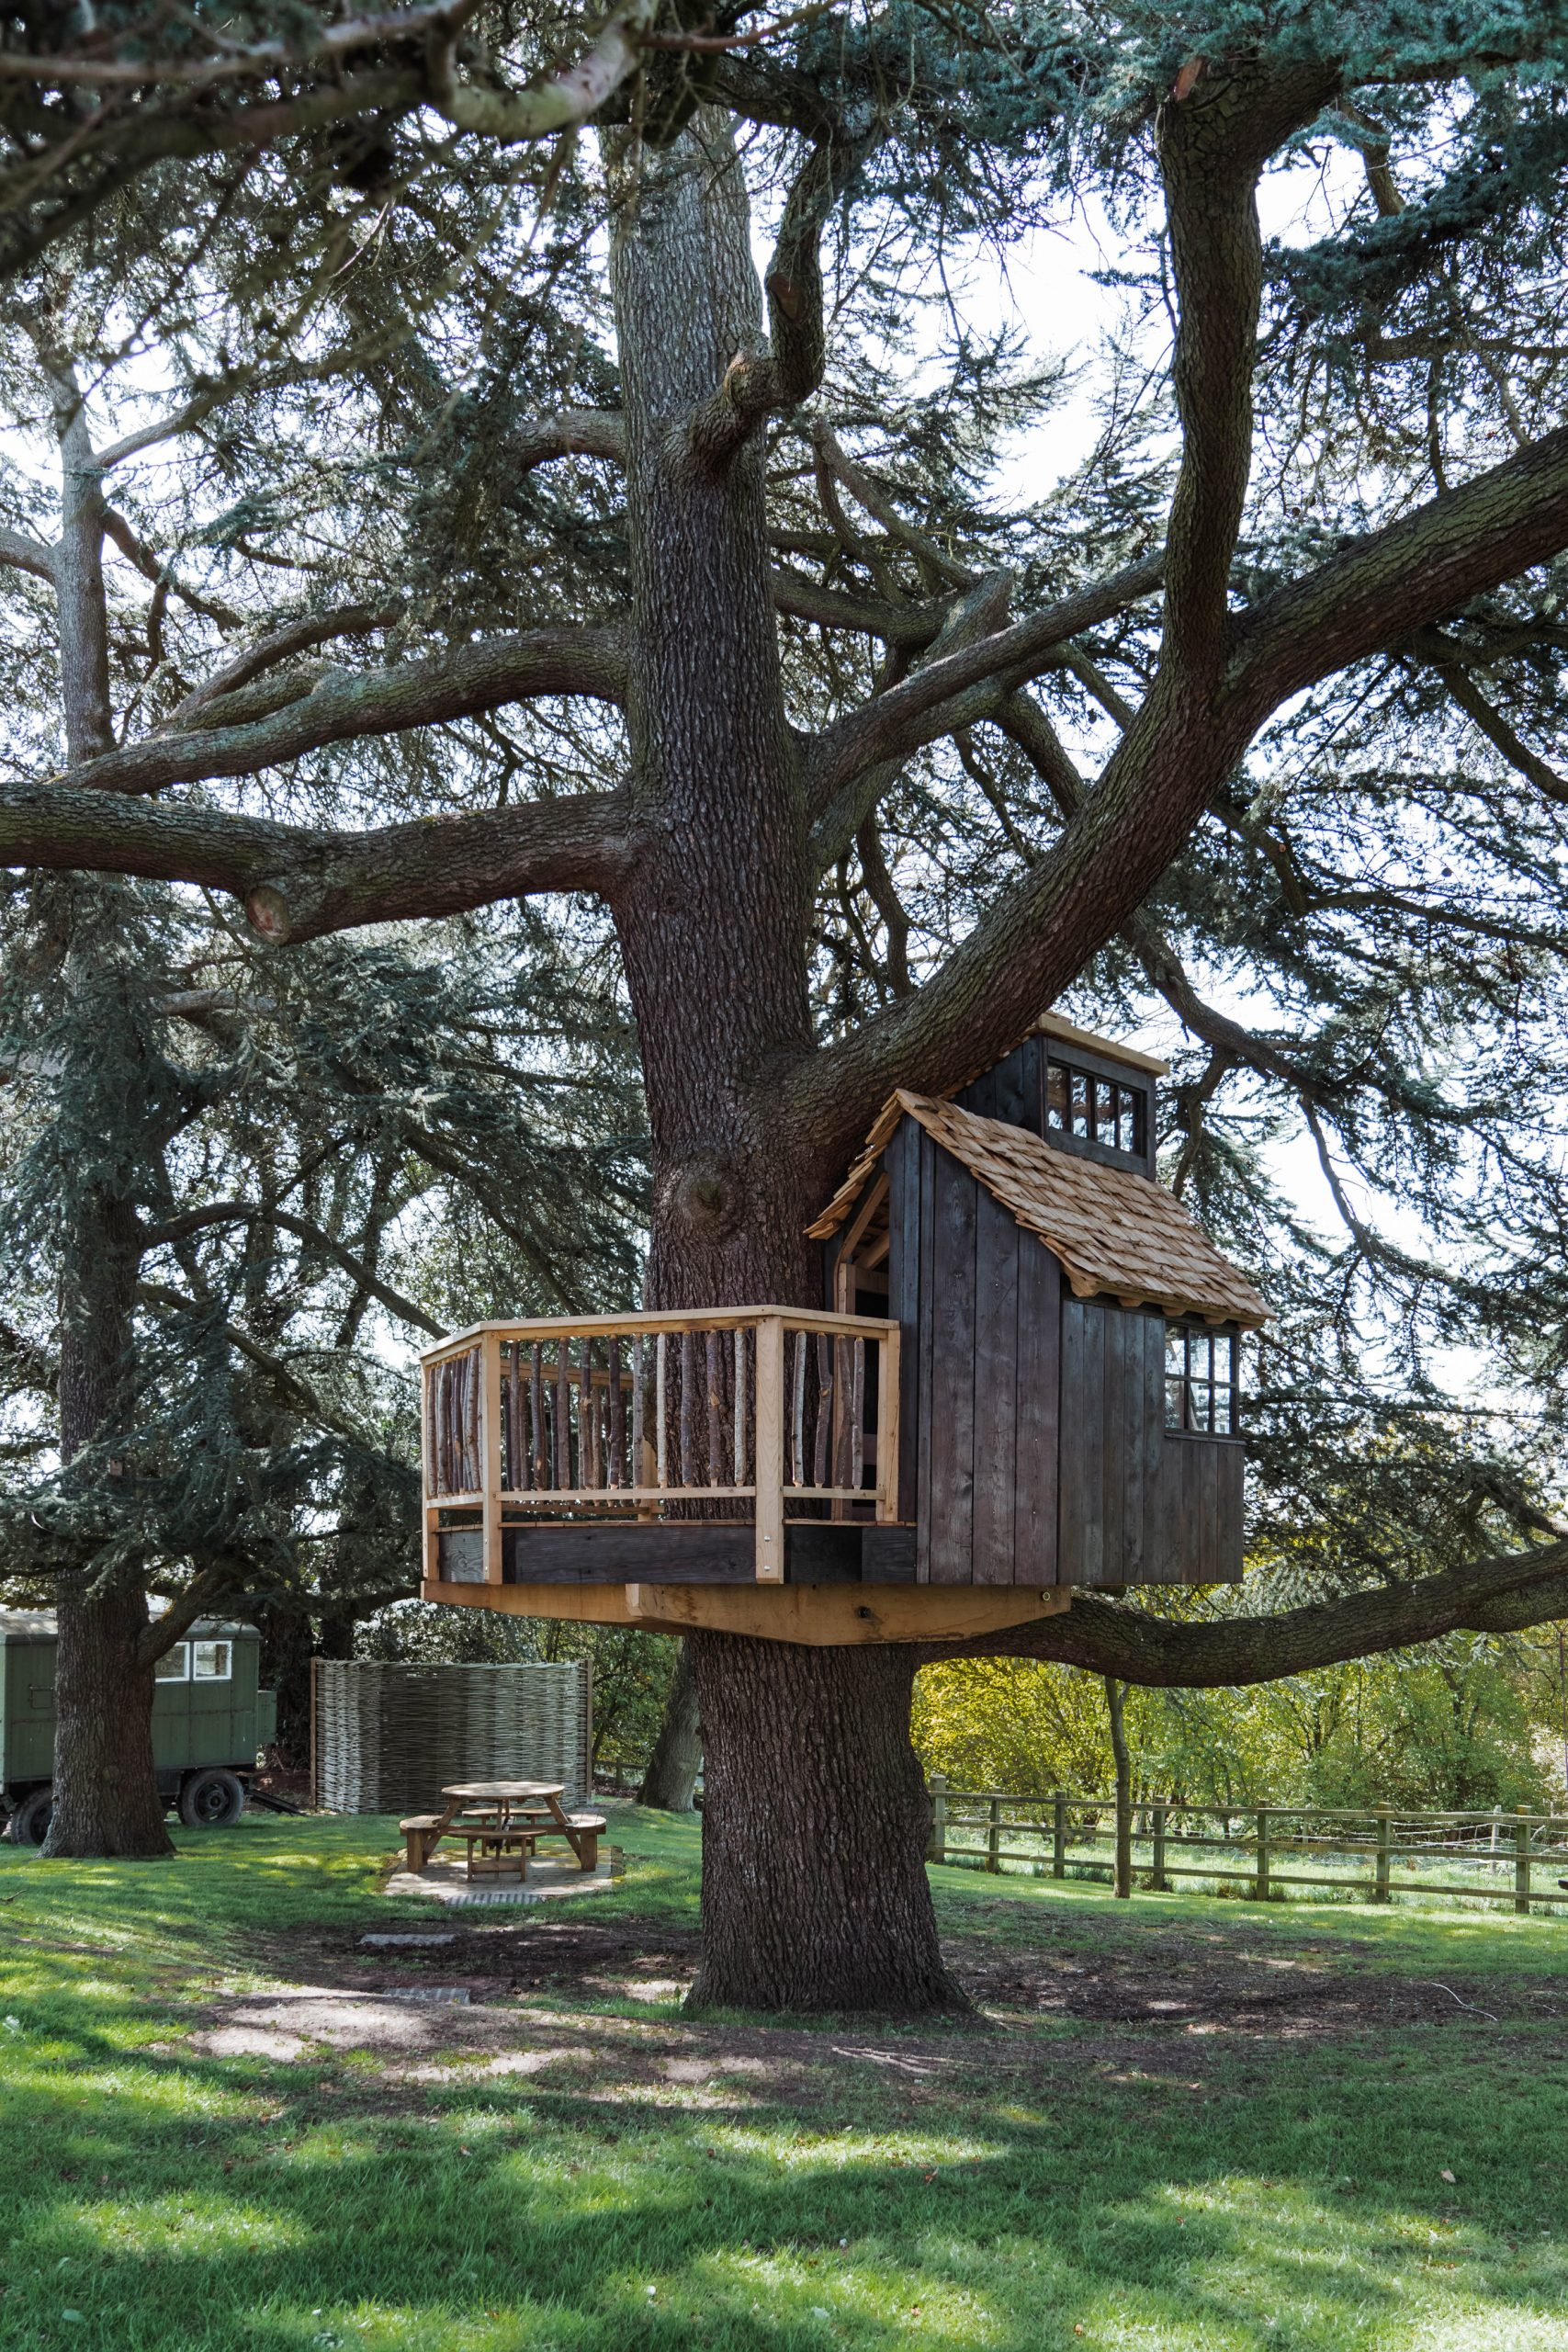 Treehouse by Sebastian Cox in the English countryside